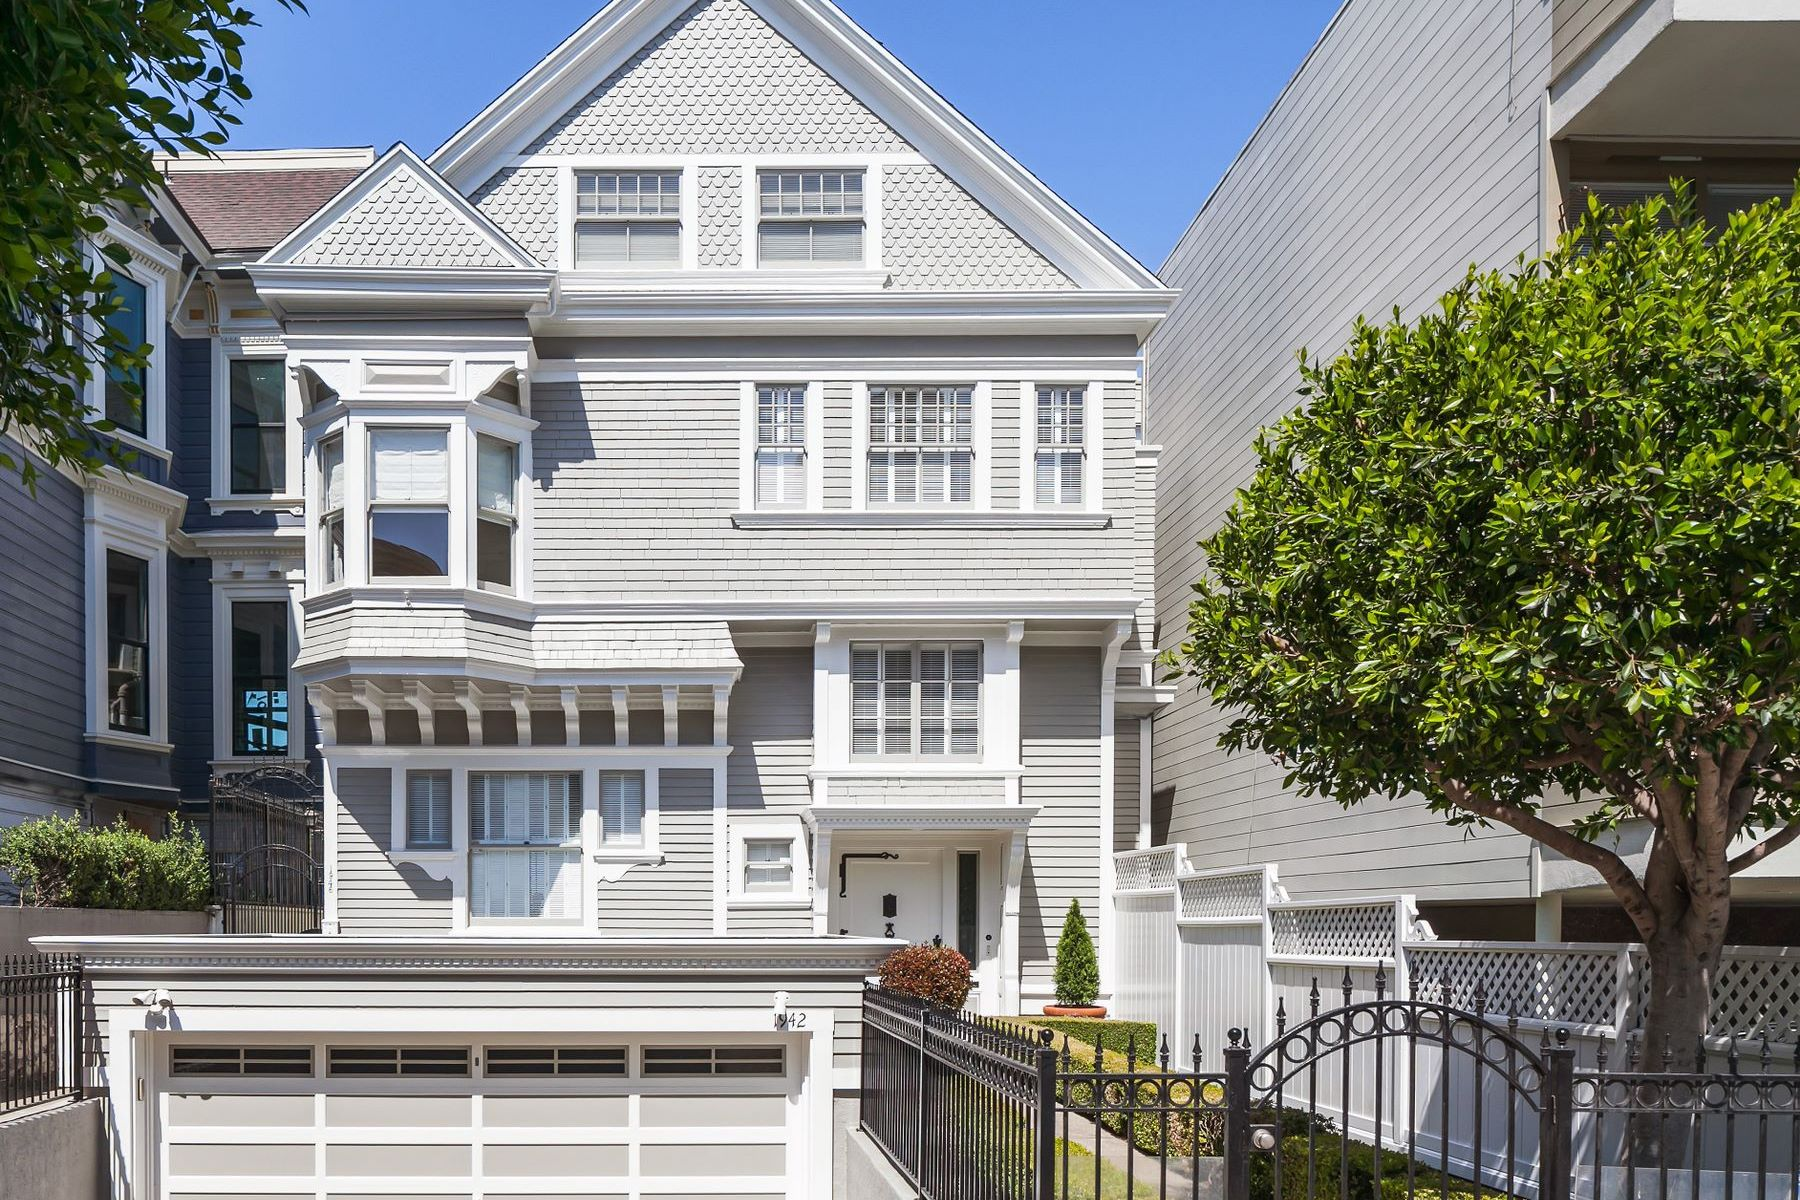 Single Family Homes for Sale at Pacific Heights Bay View Home 1942 Pacific Ave San Francisco, California 94109 United States